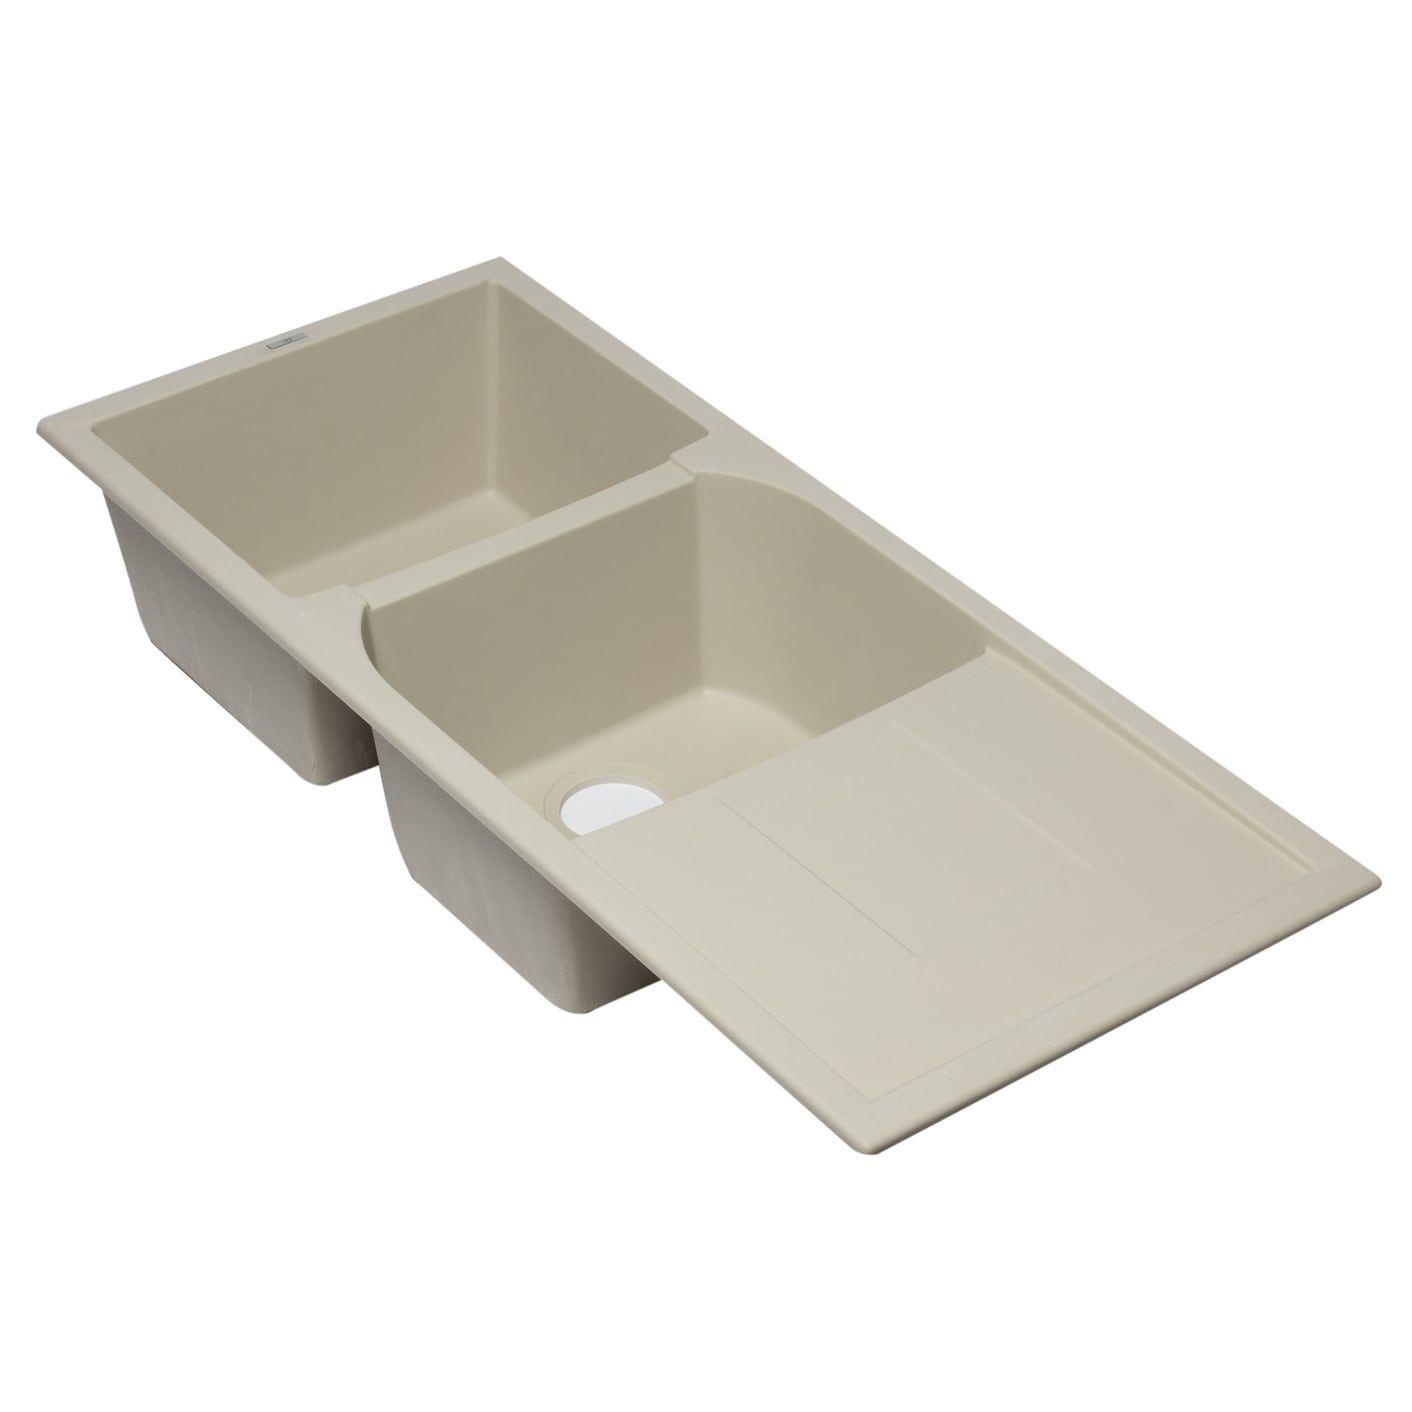 Alfi brand AB4620DI-B Biscuit 46 Double Bowl Granite Composite Kitchen Sink  with Drainboard, Blue wash